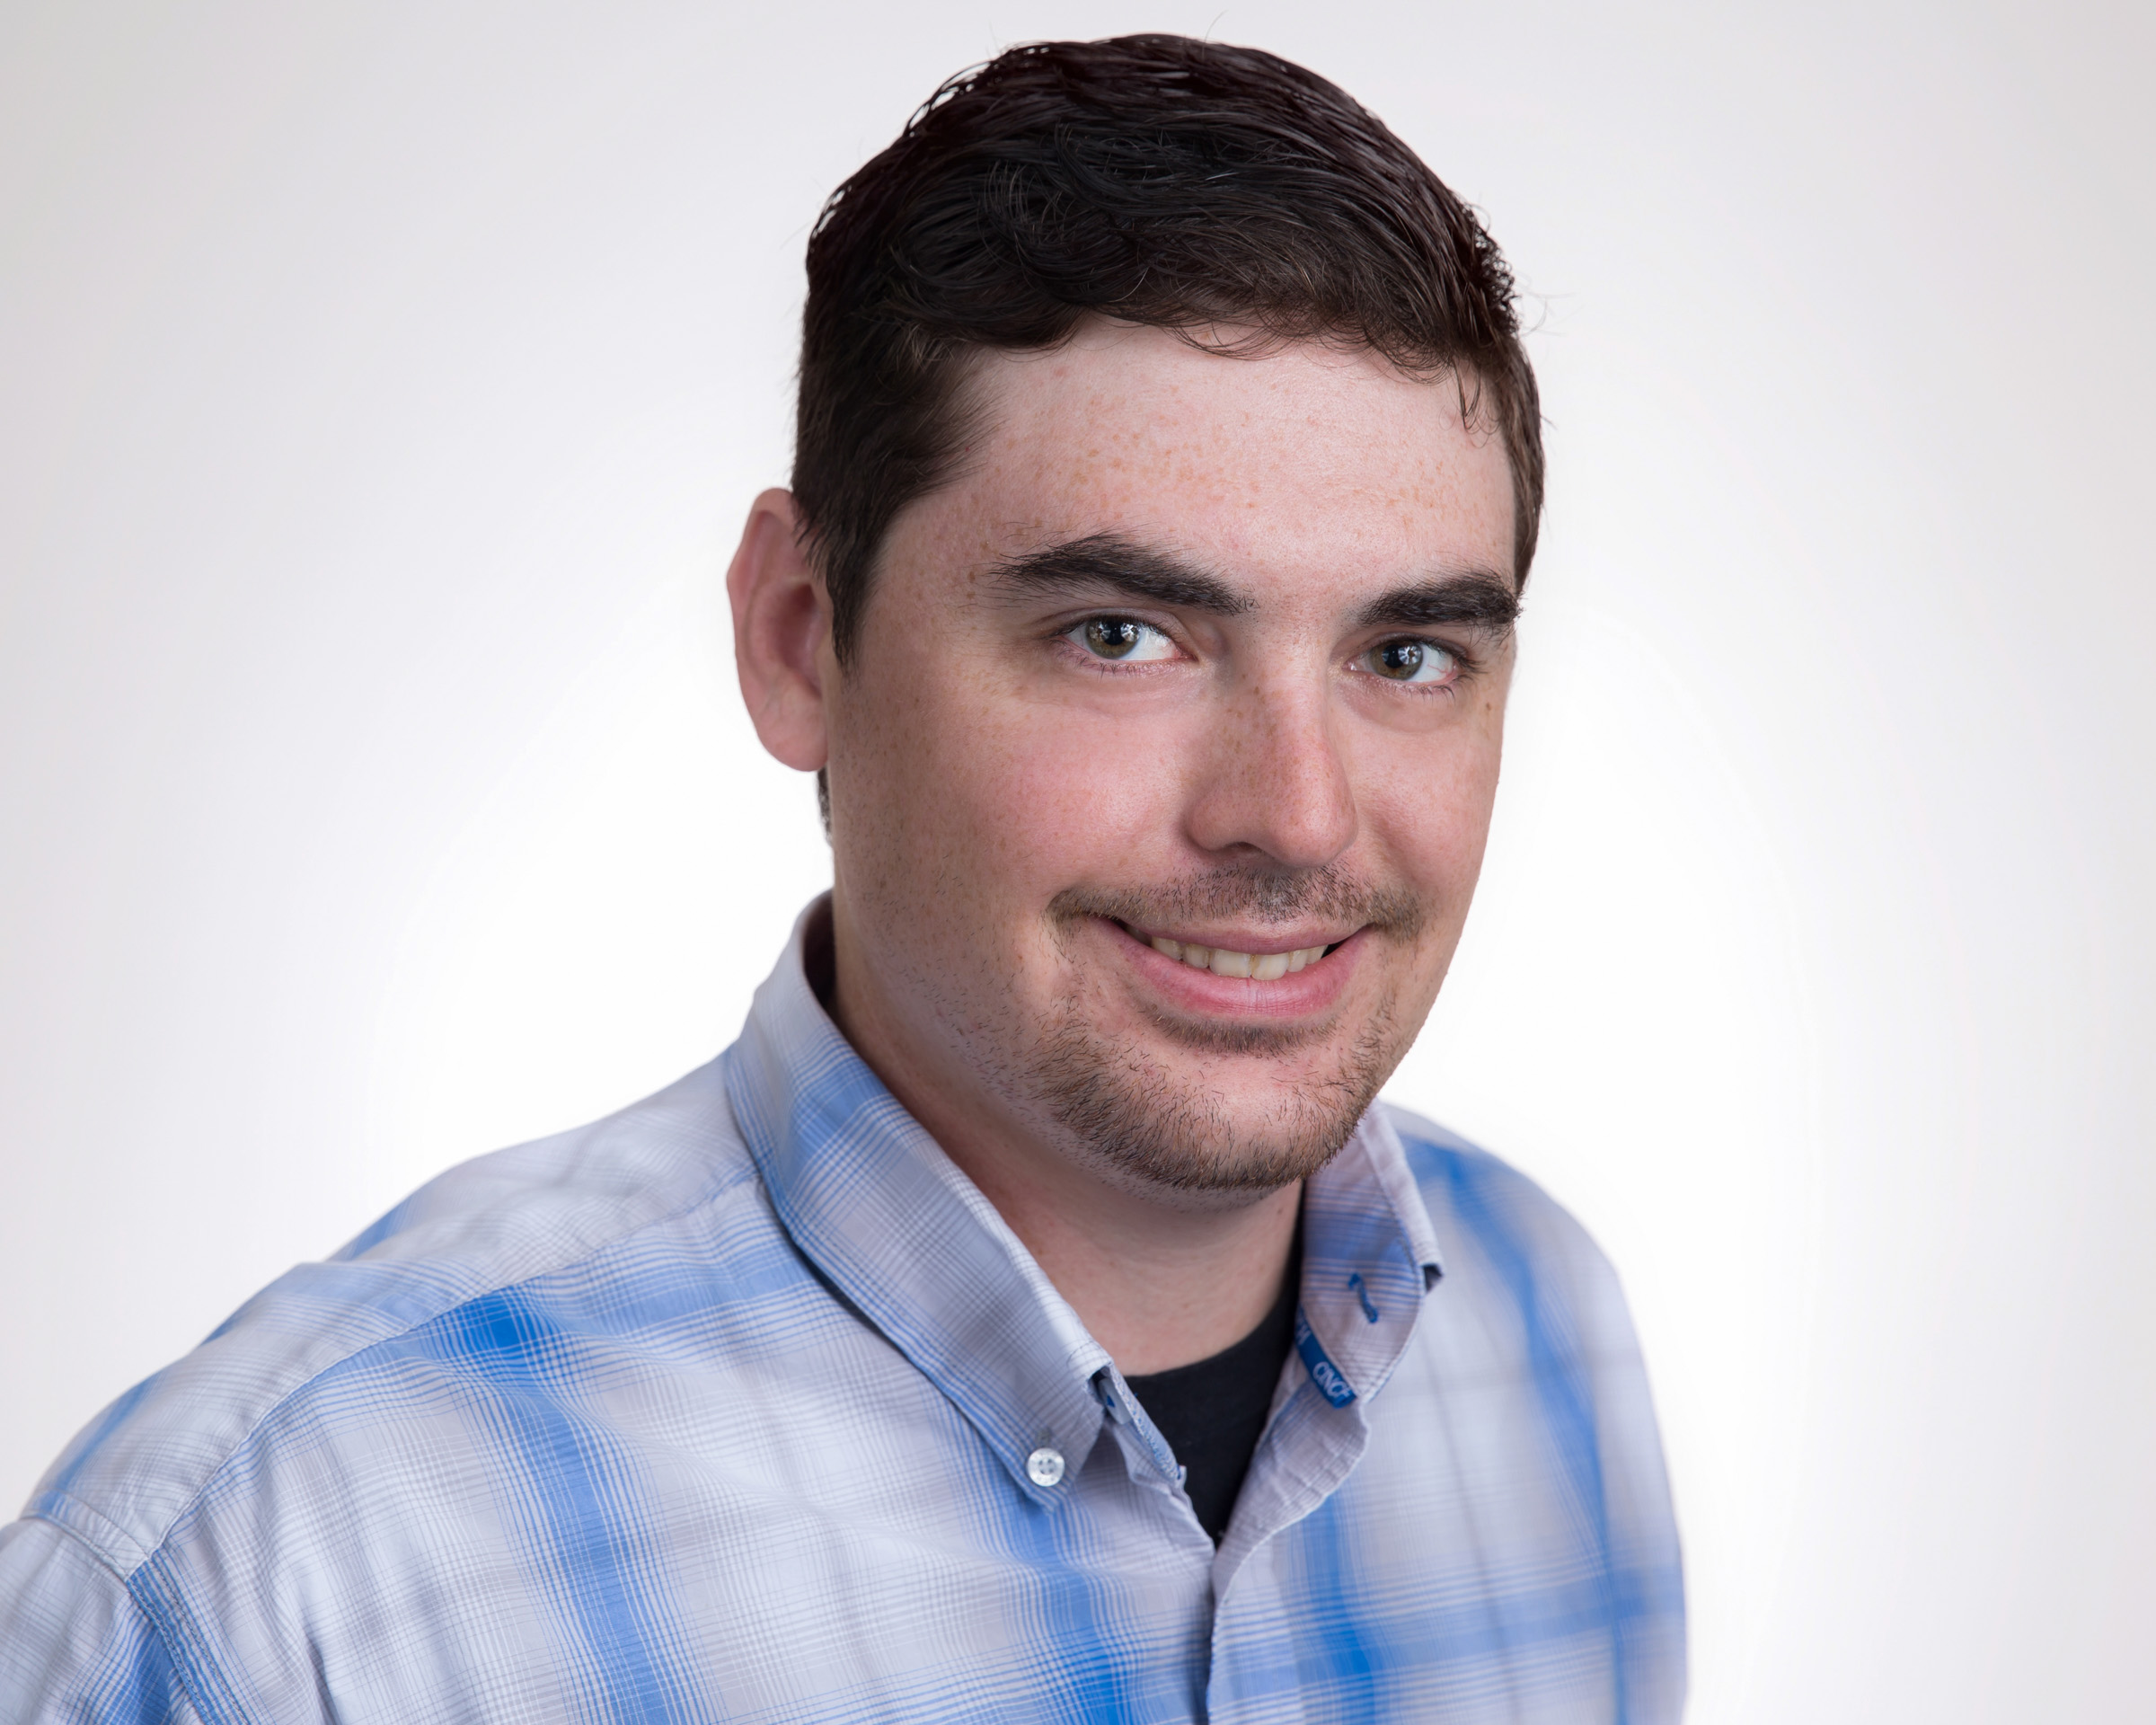 - Jacob Welborn, P.E. Jacob joined Smith Structural Engineers in February 2013 after earning his Bachelor of Science Degree in Civil Engineering with a focus on steel and concrete structures from Texas A&M University.